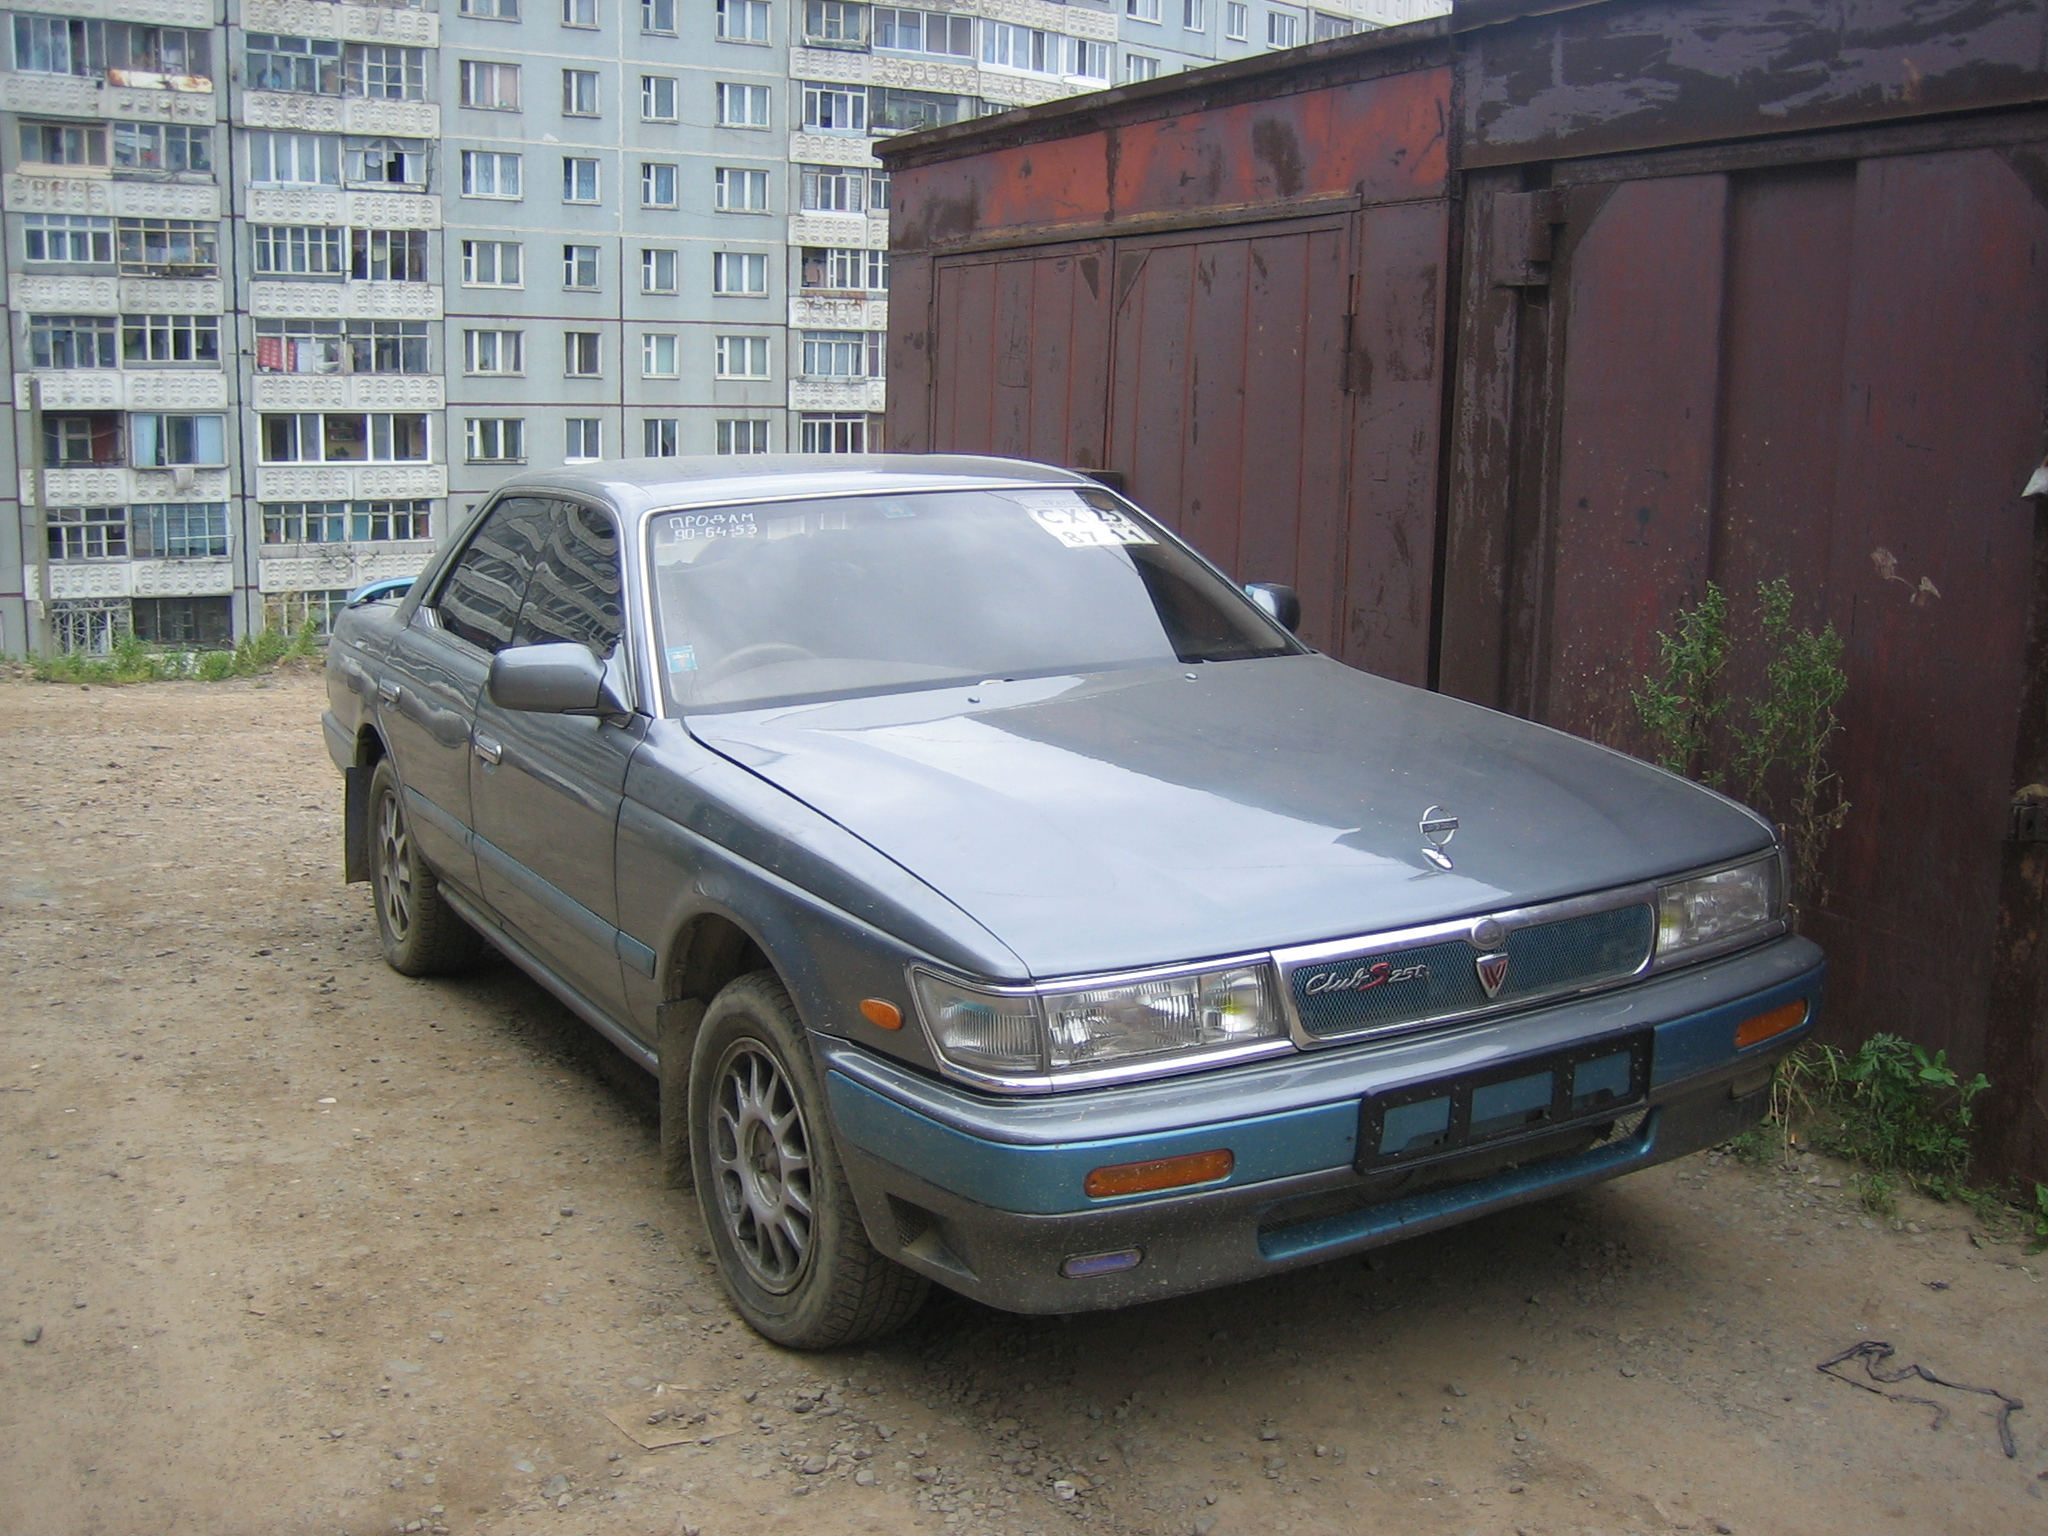 1989 Nissan Laurel #5